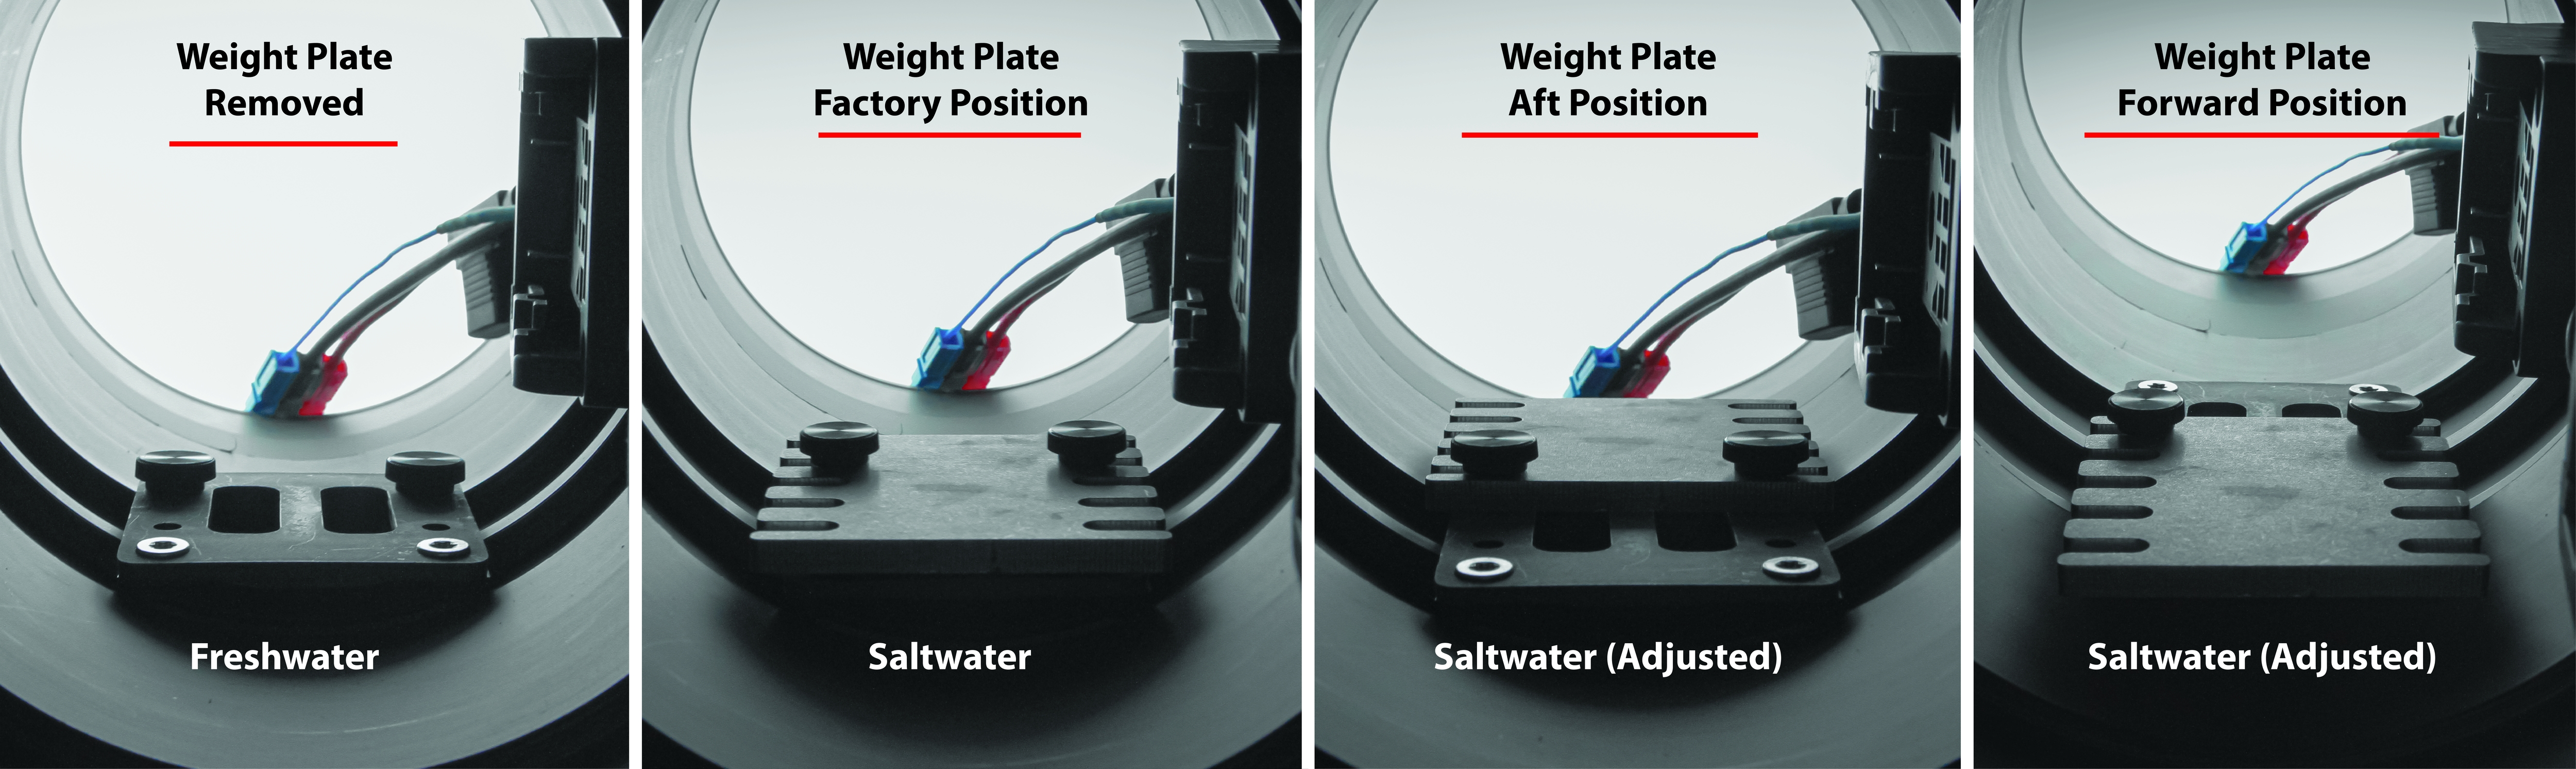 Saltwater_Weight_Plate_Configurations.jpg